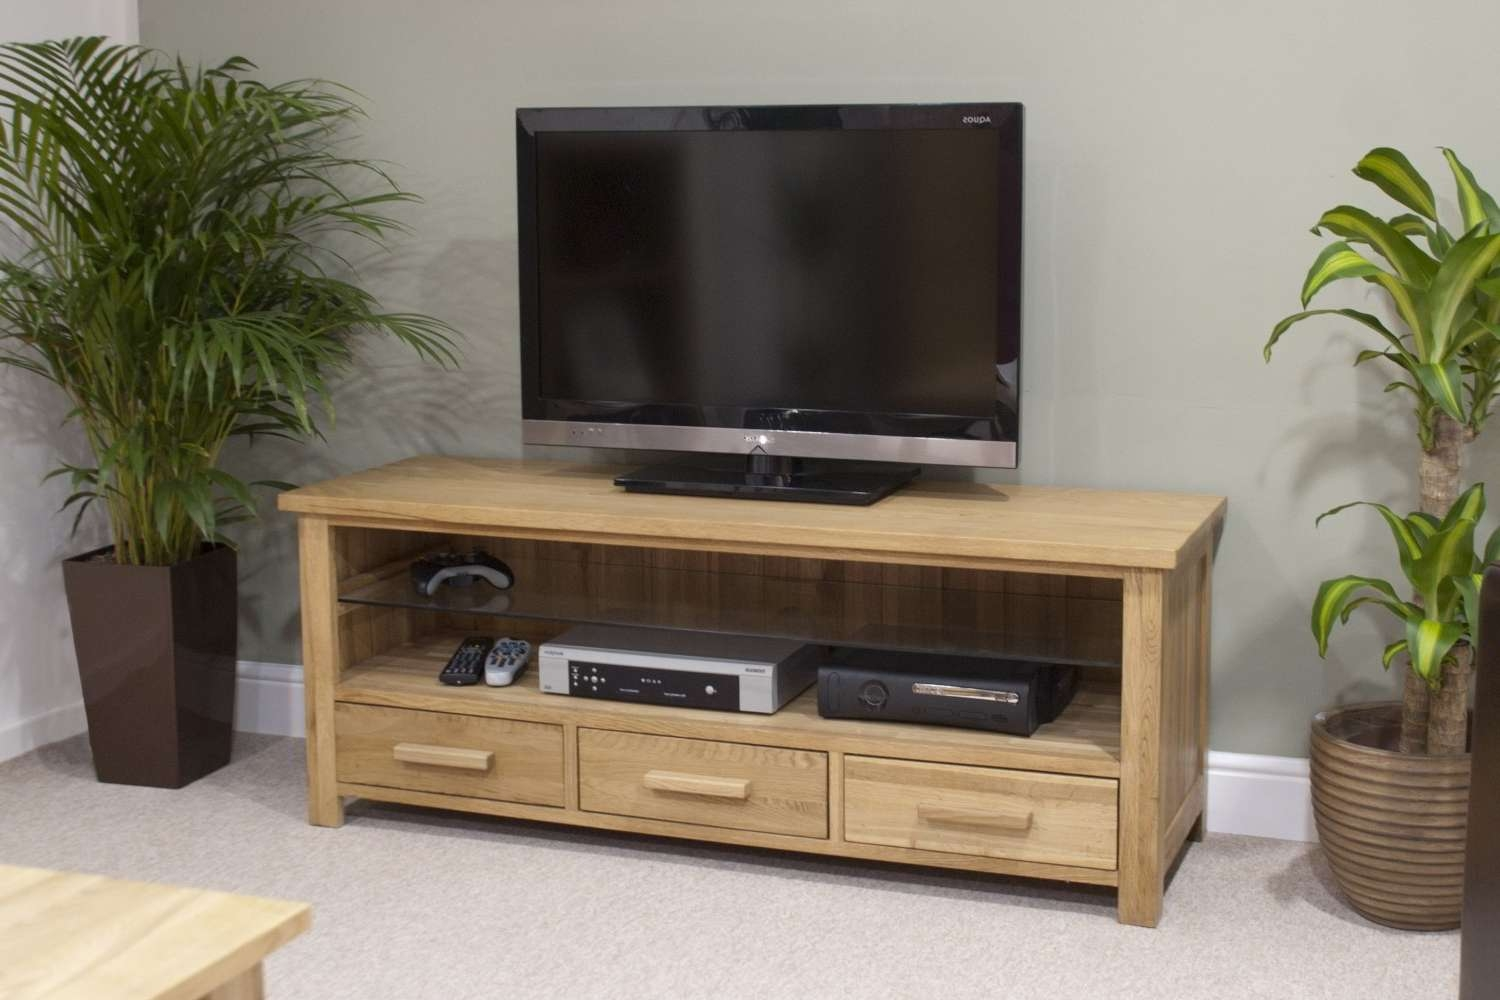 Eton Solid Oak Living Room Furniture Widescreen Tv Cabinet Stand With Regard To Wide Screen Tv Stands (View 10 of 15)